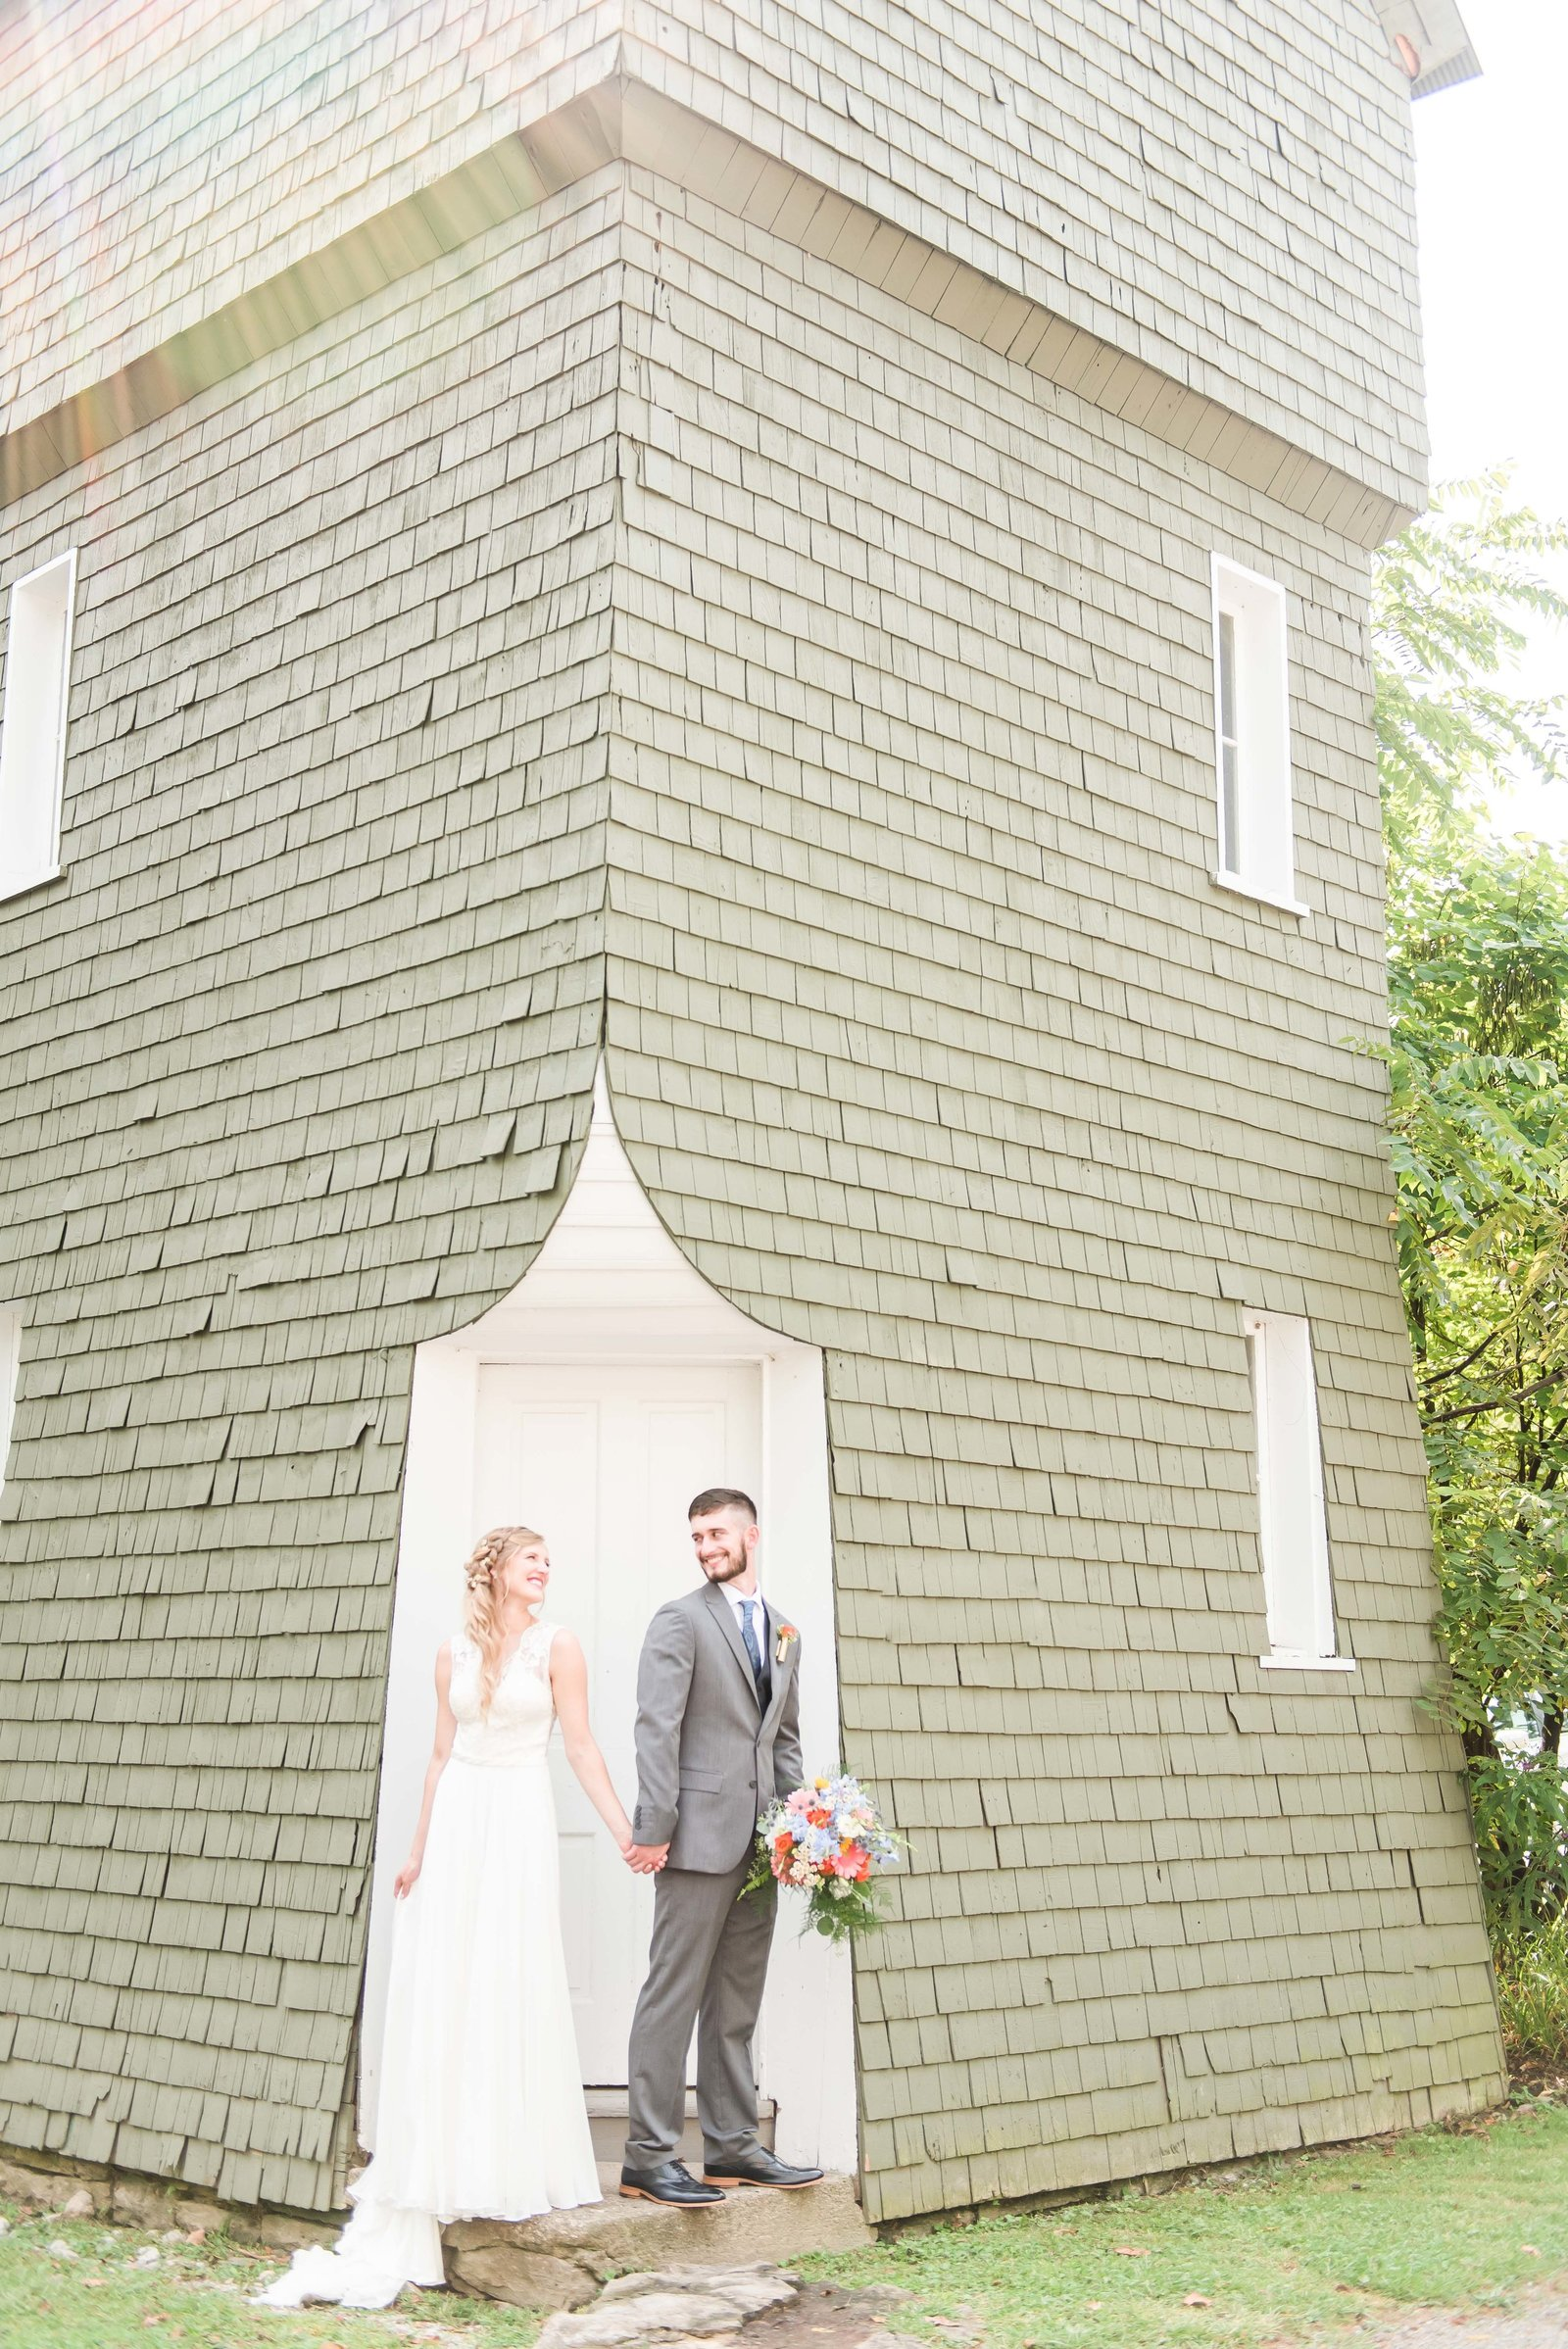 Colorful Wedding at Krippendorf Lodge